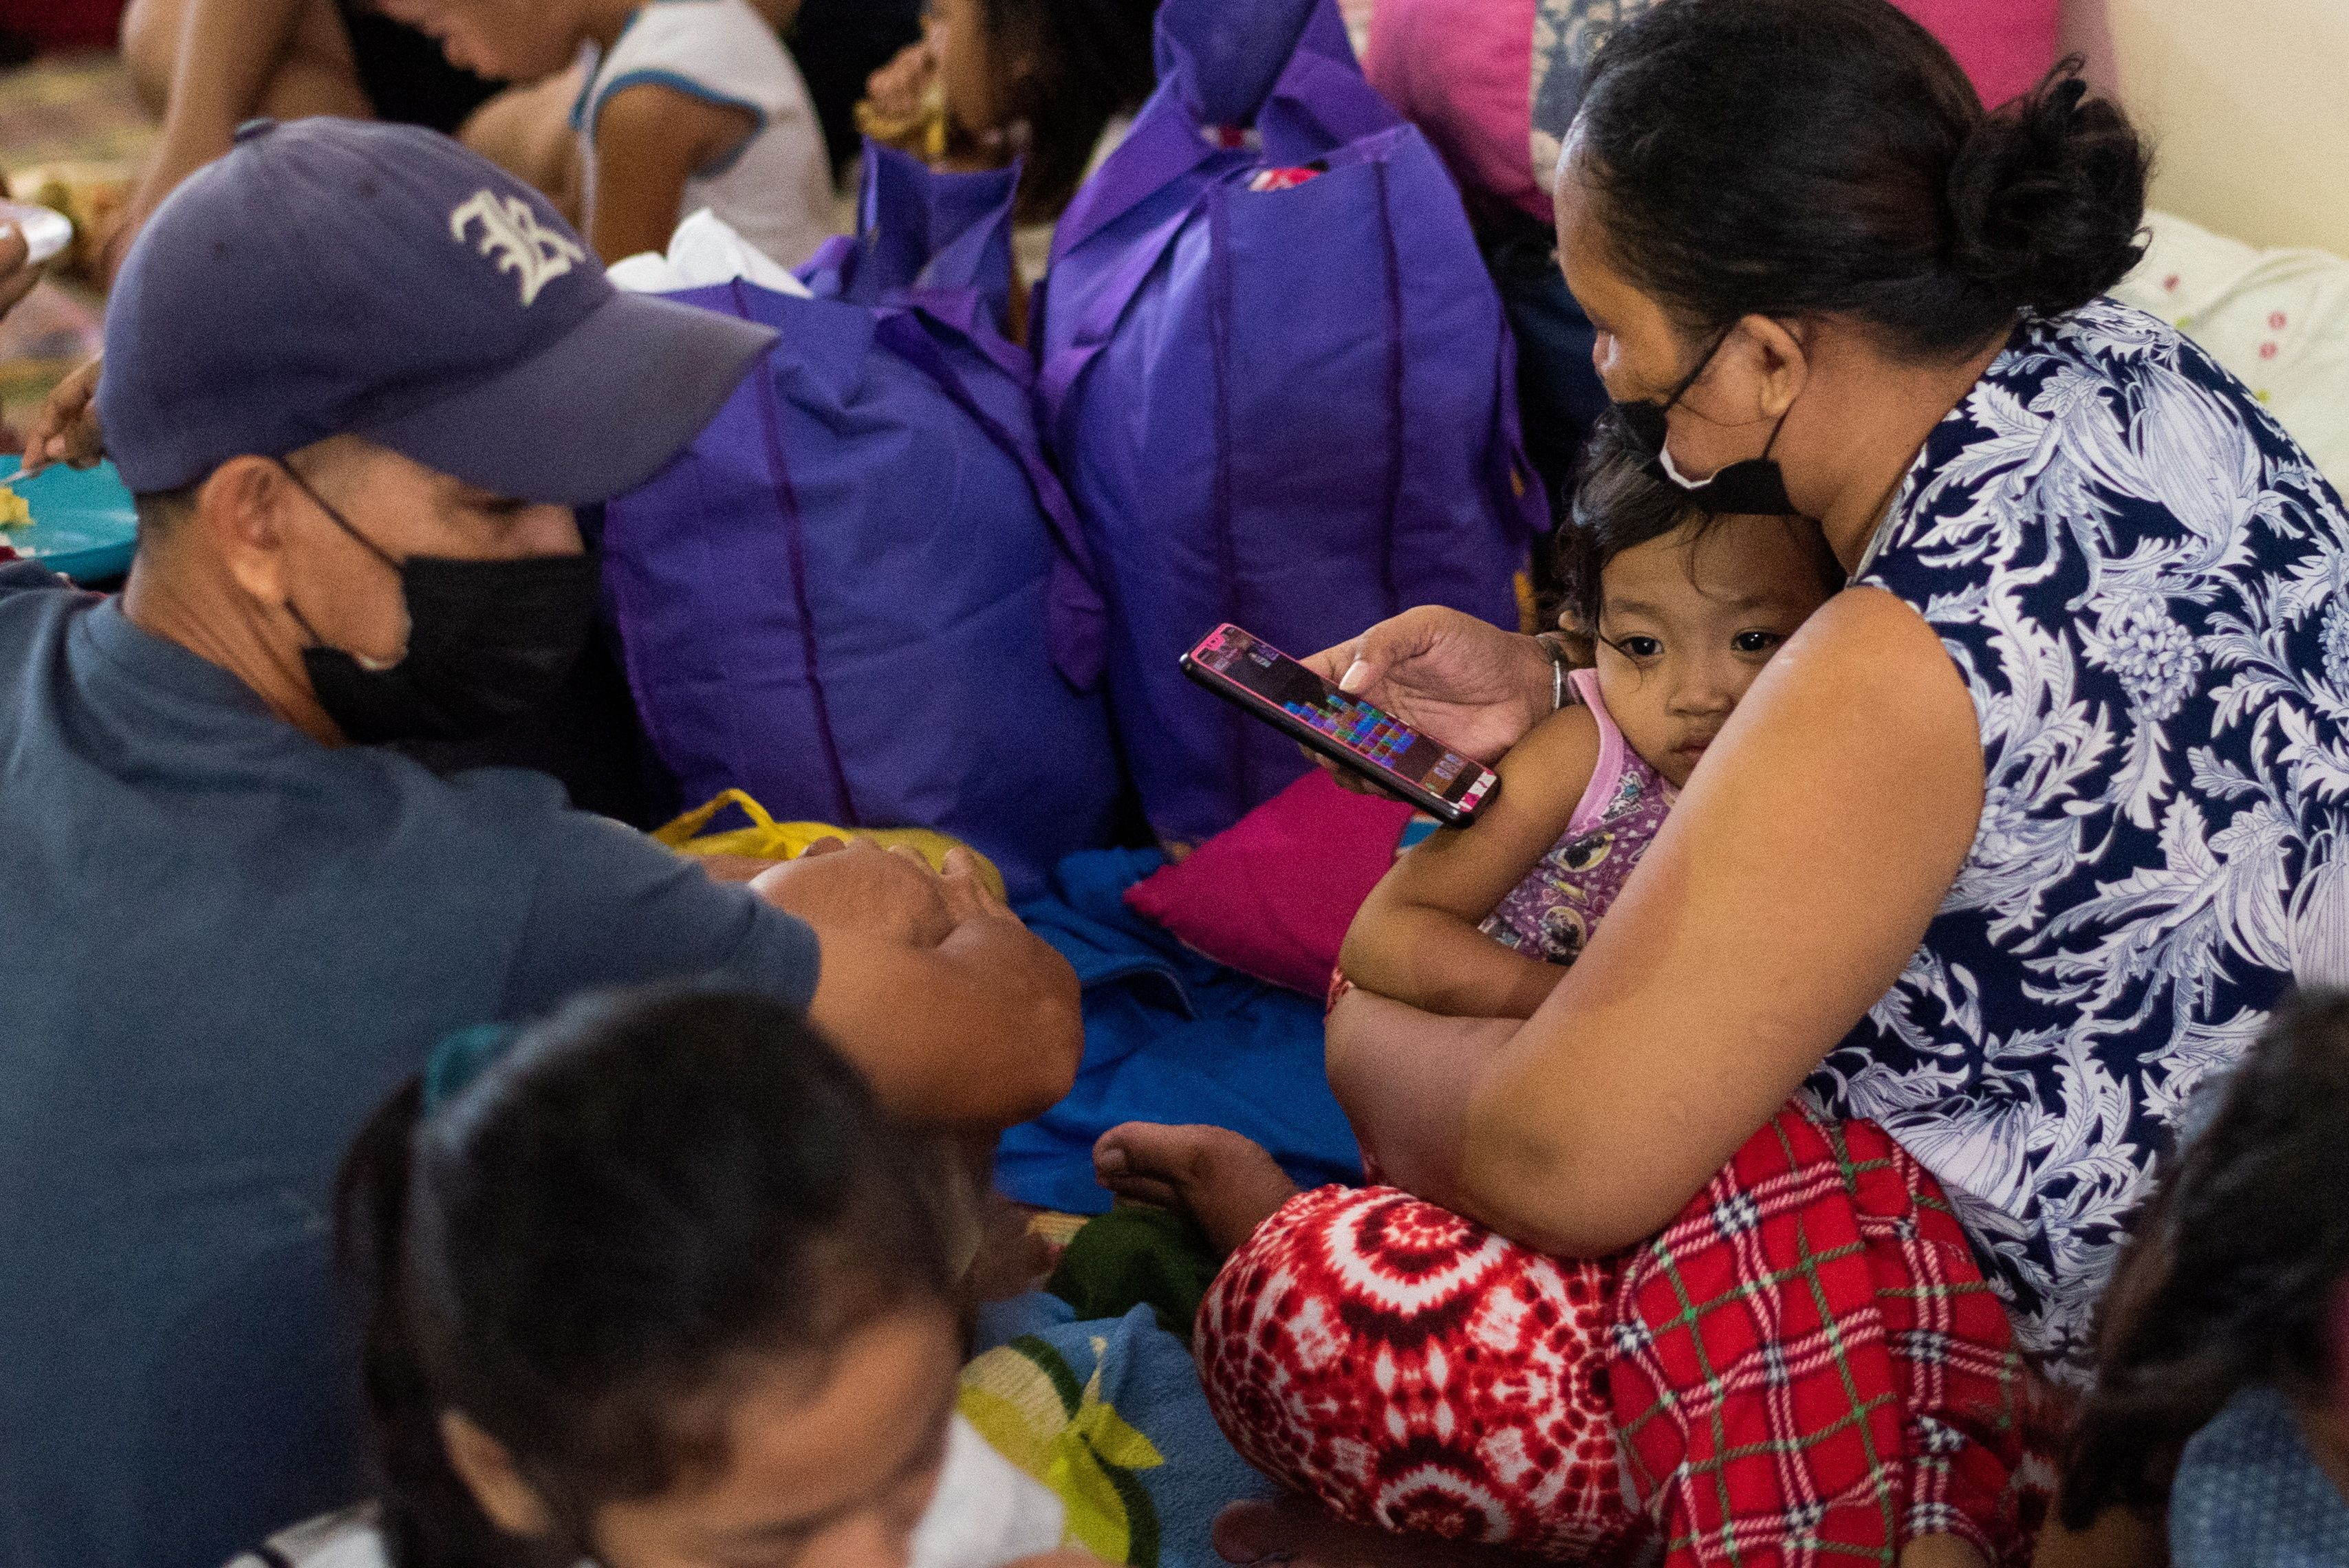 A child leans on her mother after being evacuated at a school following heavy rains that caused flooding in some areas in Marikina city, Metro Manila, Philippines, July 24, 2021. REUTERS/Lisa Marie David